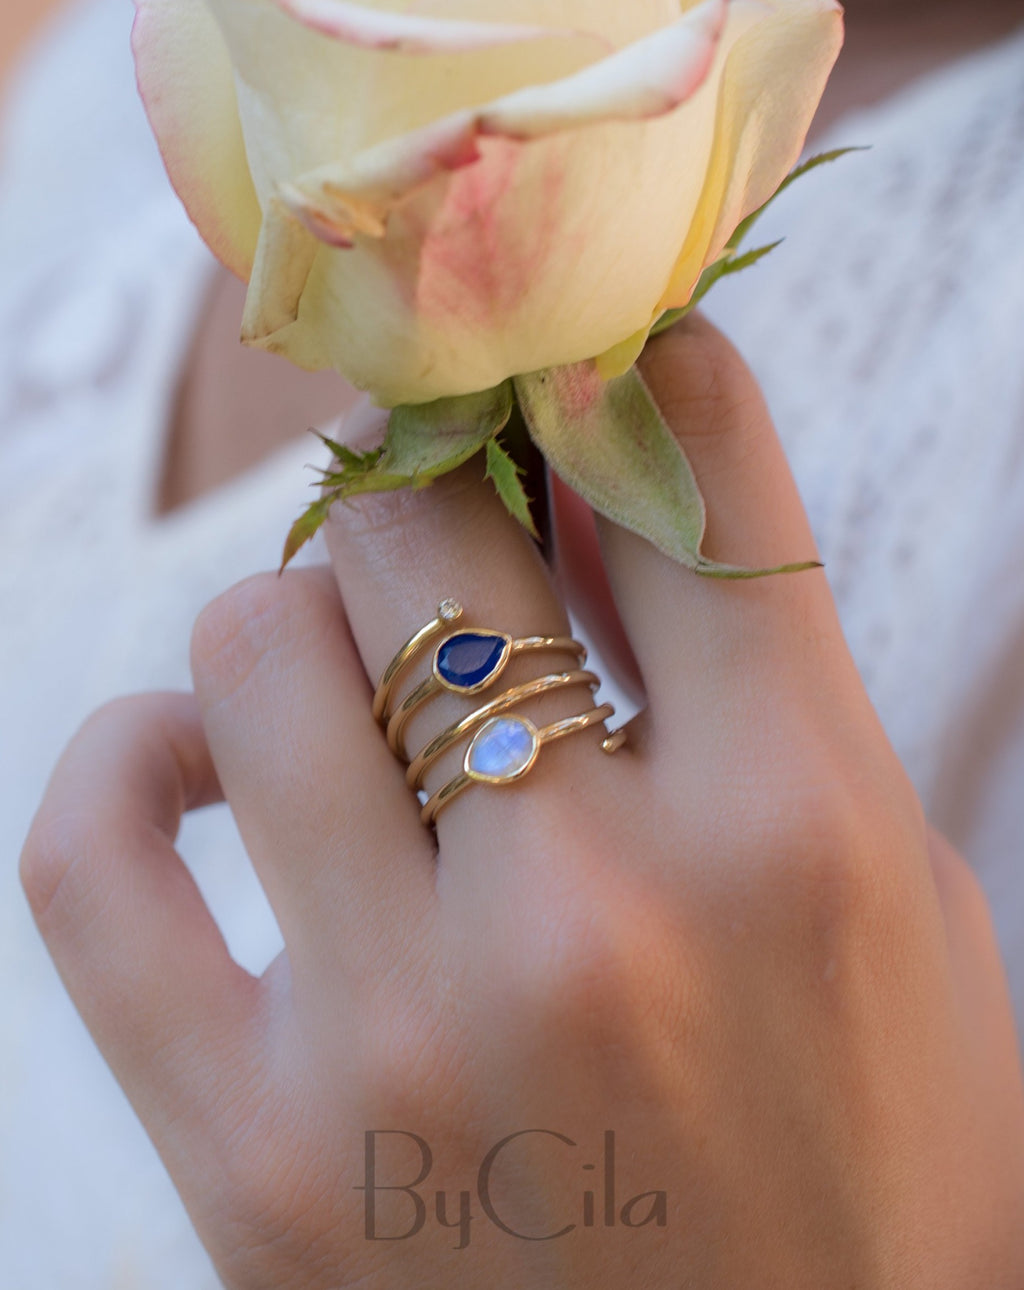 Lapis Lazuli & Moonstone Gold Plated 18k Ring * Blue stone* Gemstones * Handmade *Statement *Gift for her *Spiral Ring Jewelry*Bycila*BJR059